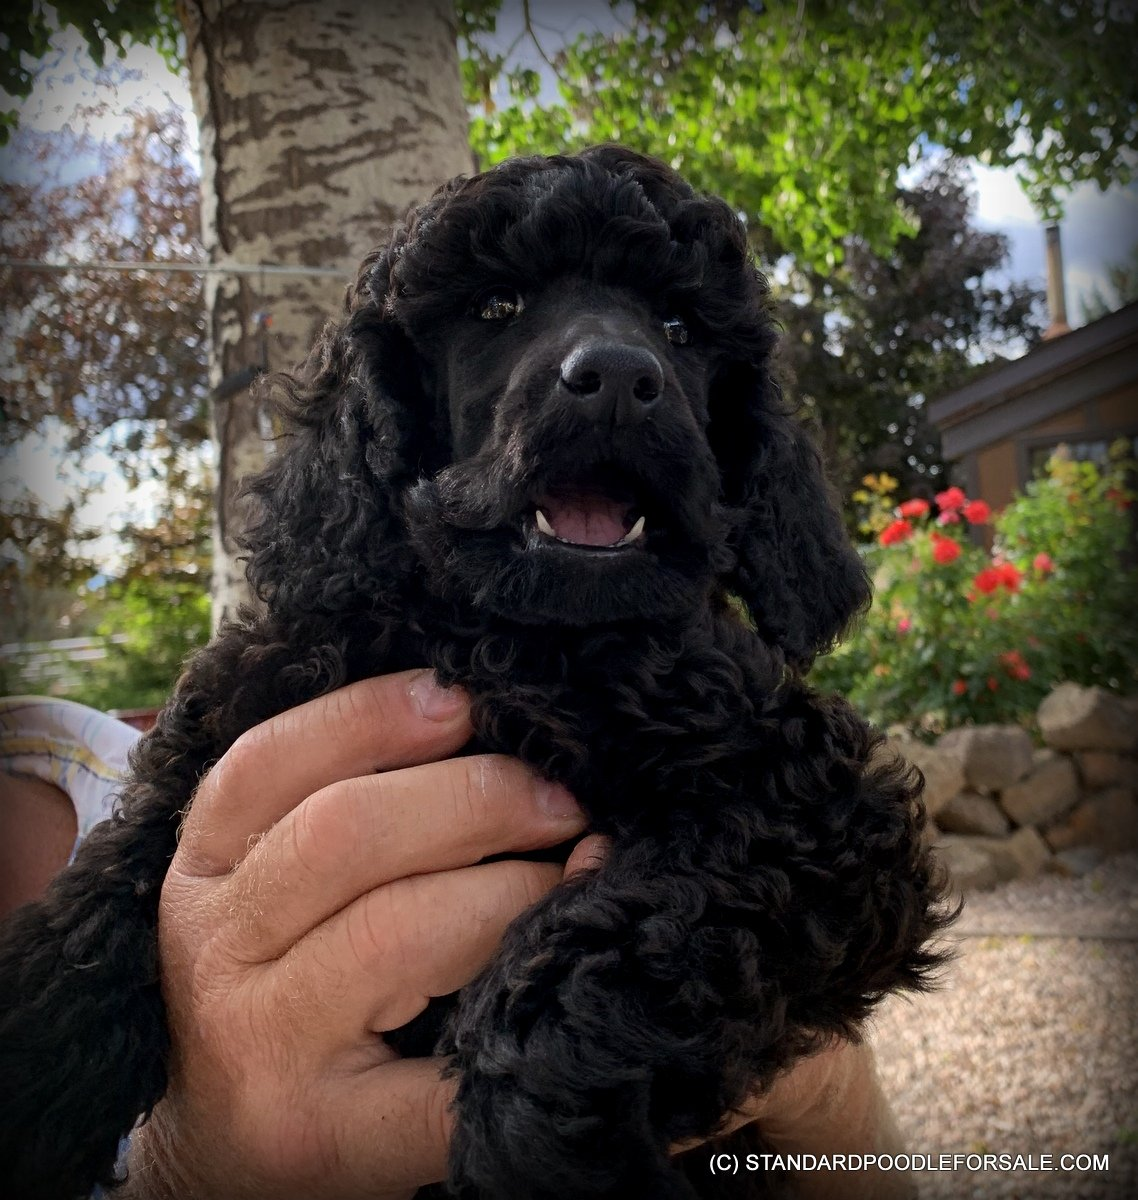 Sebastian Puppy Of Standard Poodle For Sale Near Bend Oregon Vip Puppies